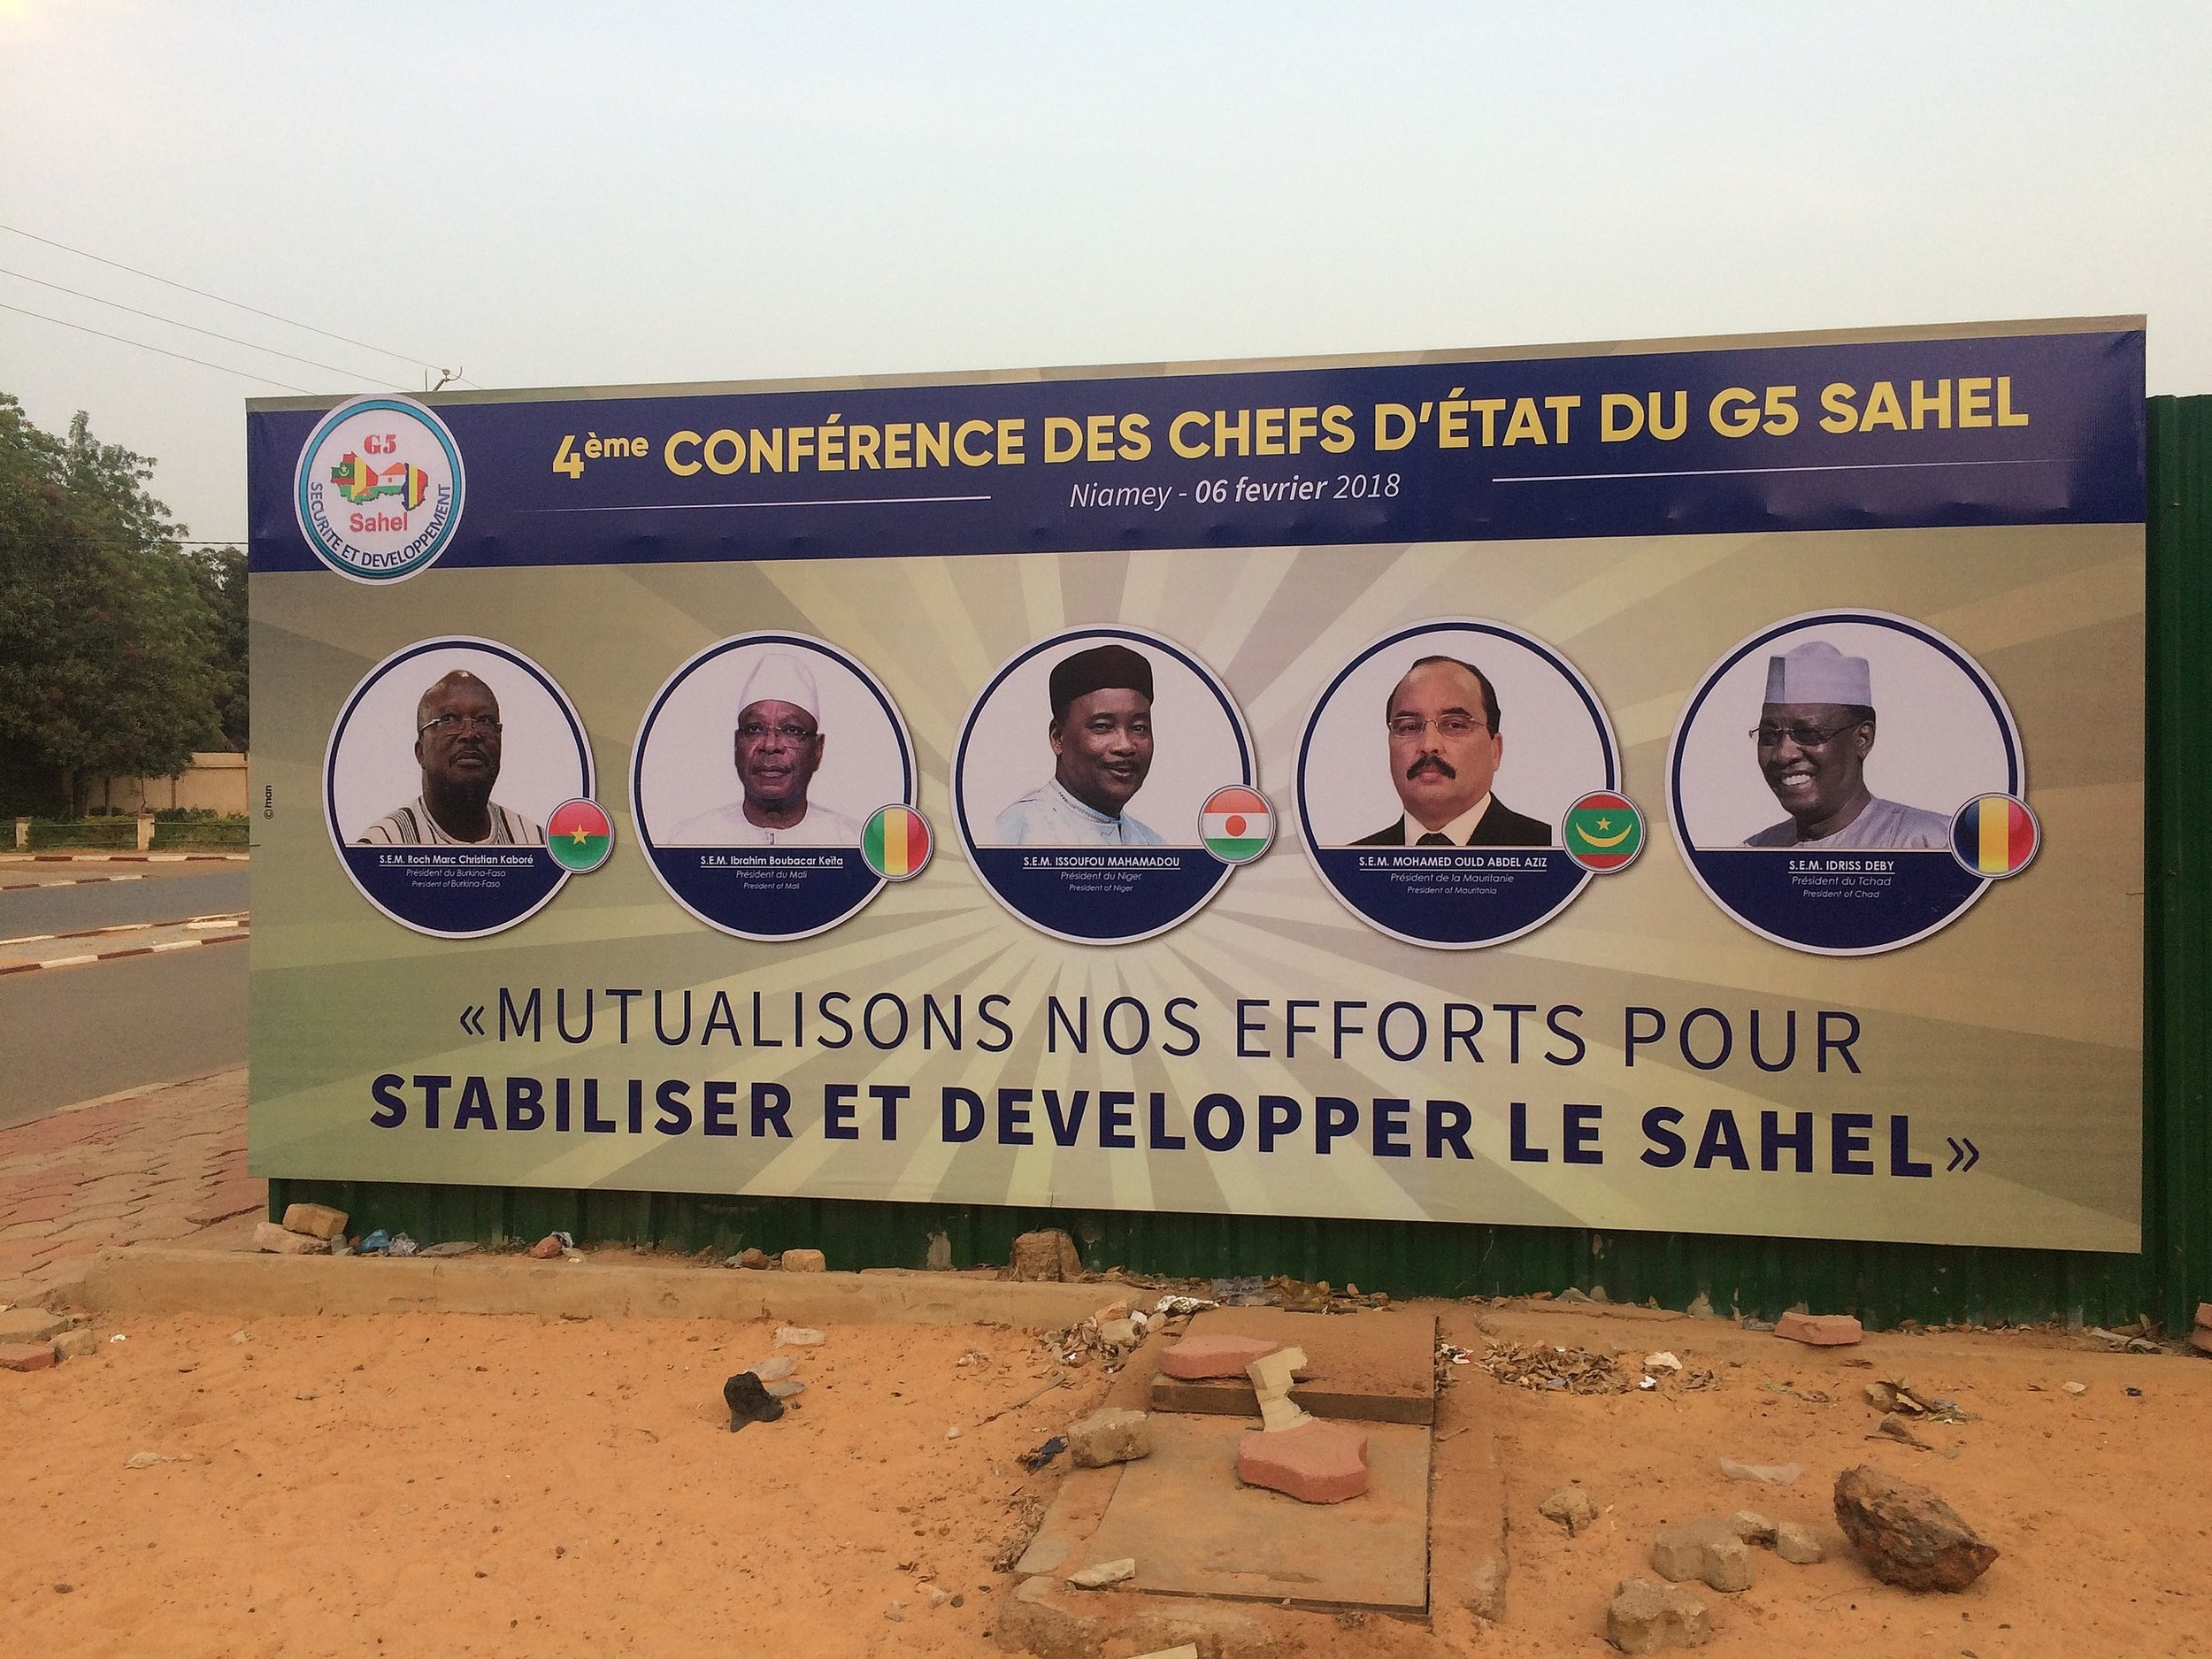 A billboard in Niamey (Niger) announcing a summit of Heads of State of the G5 Sahel in February 2018. (Wikimedia)